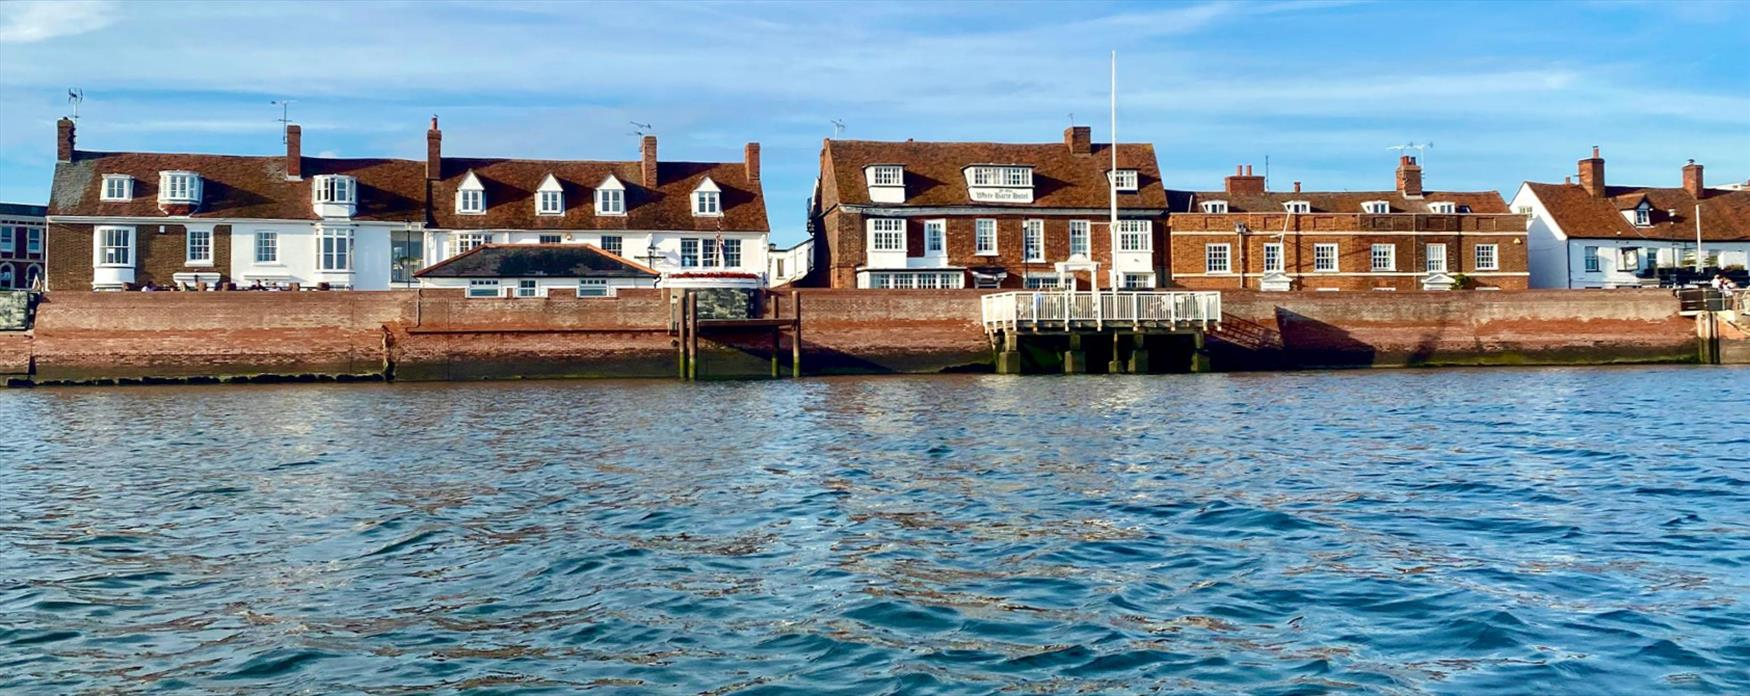 A view of the Quay in Burnham on Crouch